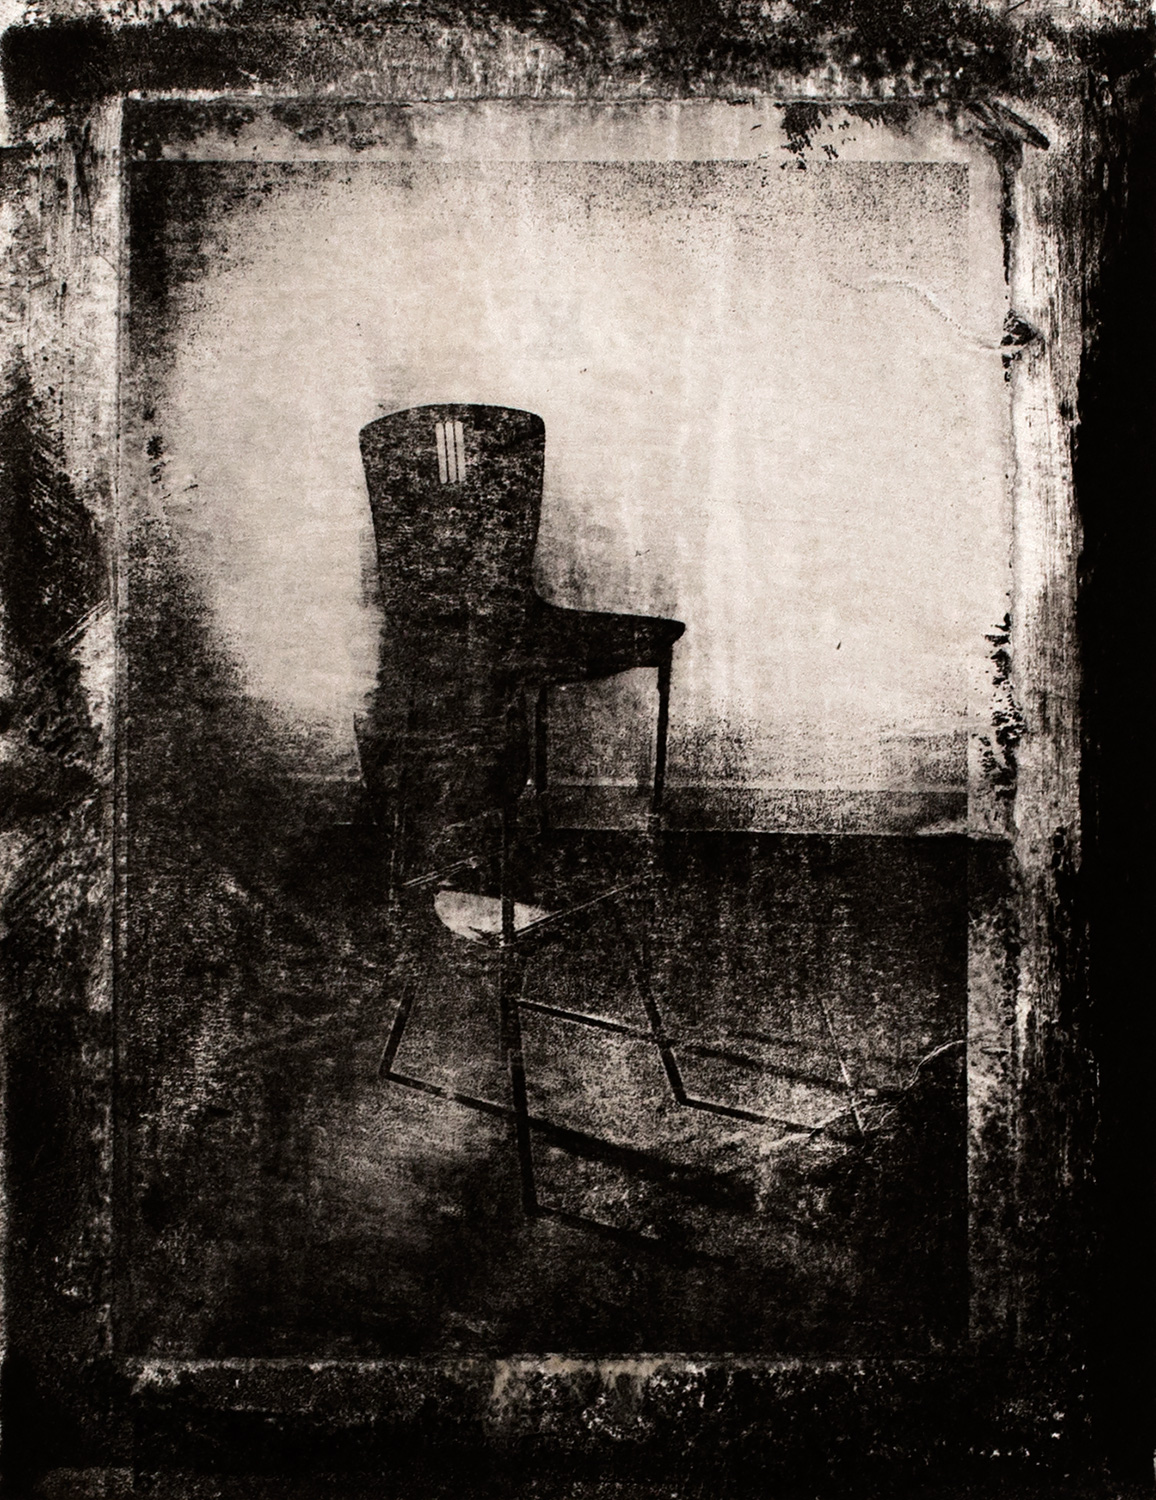 Chairs V , 2016, paper lithograph on Fabriano Artistico 300 gsm, 42 x 29.7 cm